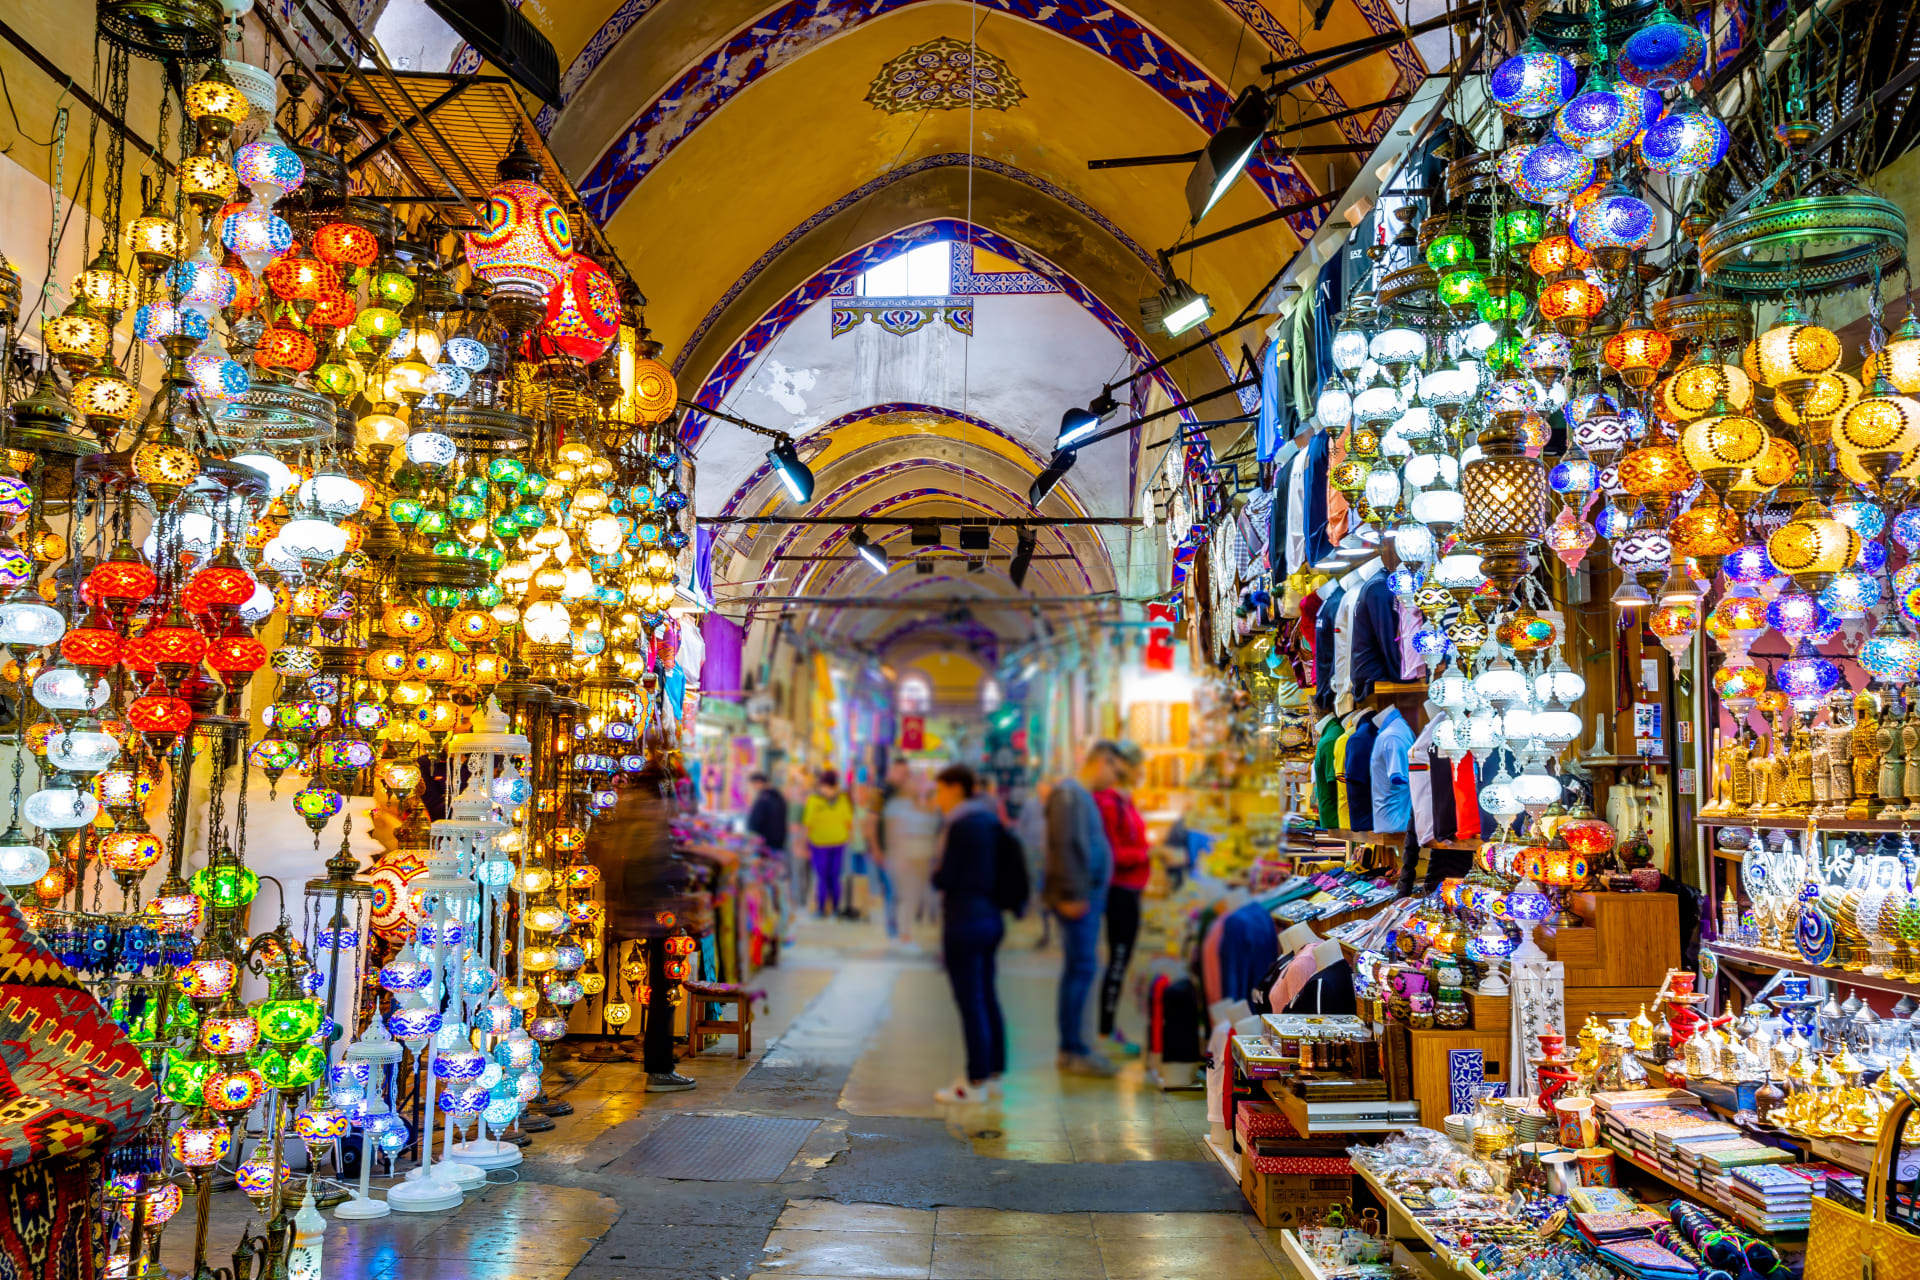 Istanbul - Historical Bazaars and Turkish Shopping Tradition